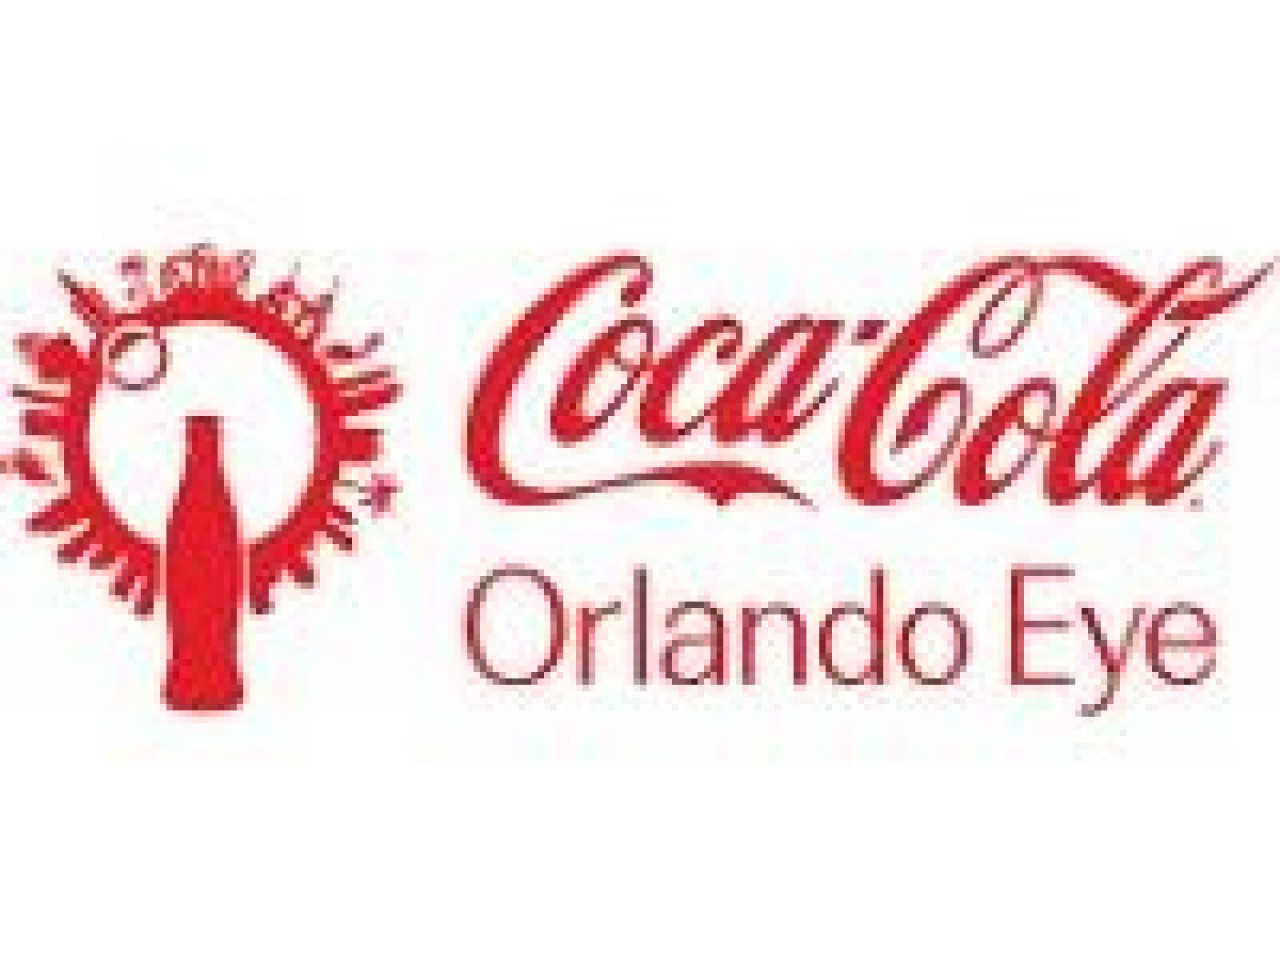 Orlando Tours & Attractions